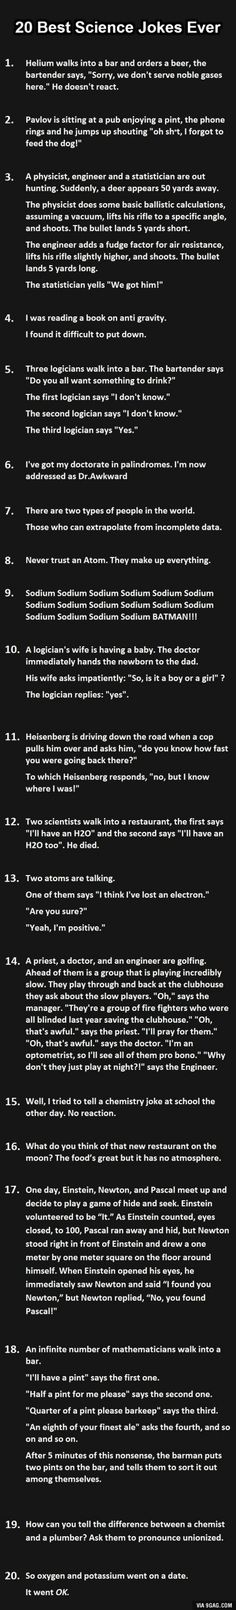 20 best science jokes ever… Do you get them all? - 9GAG